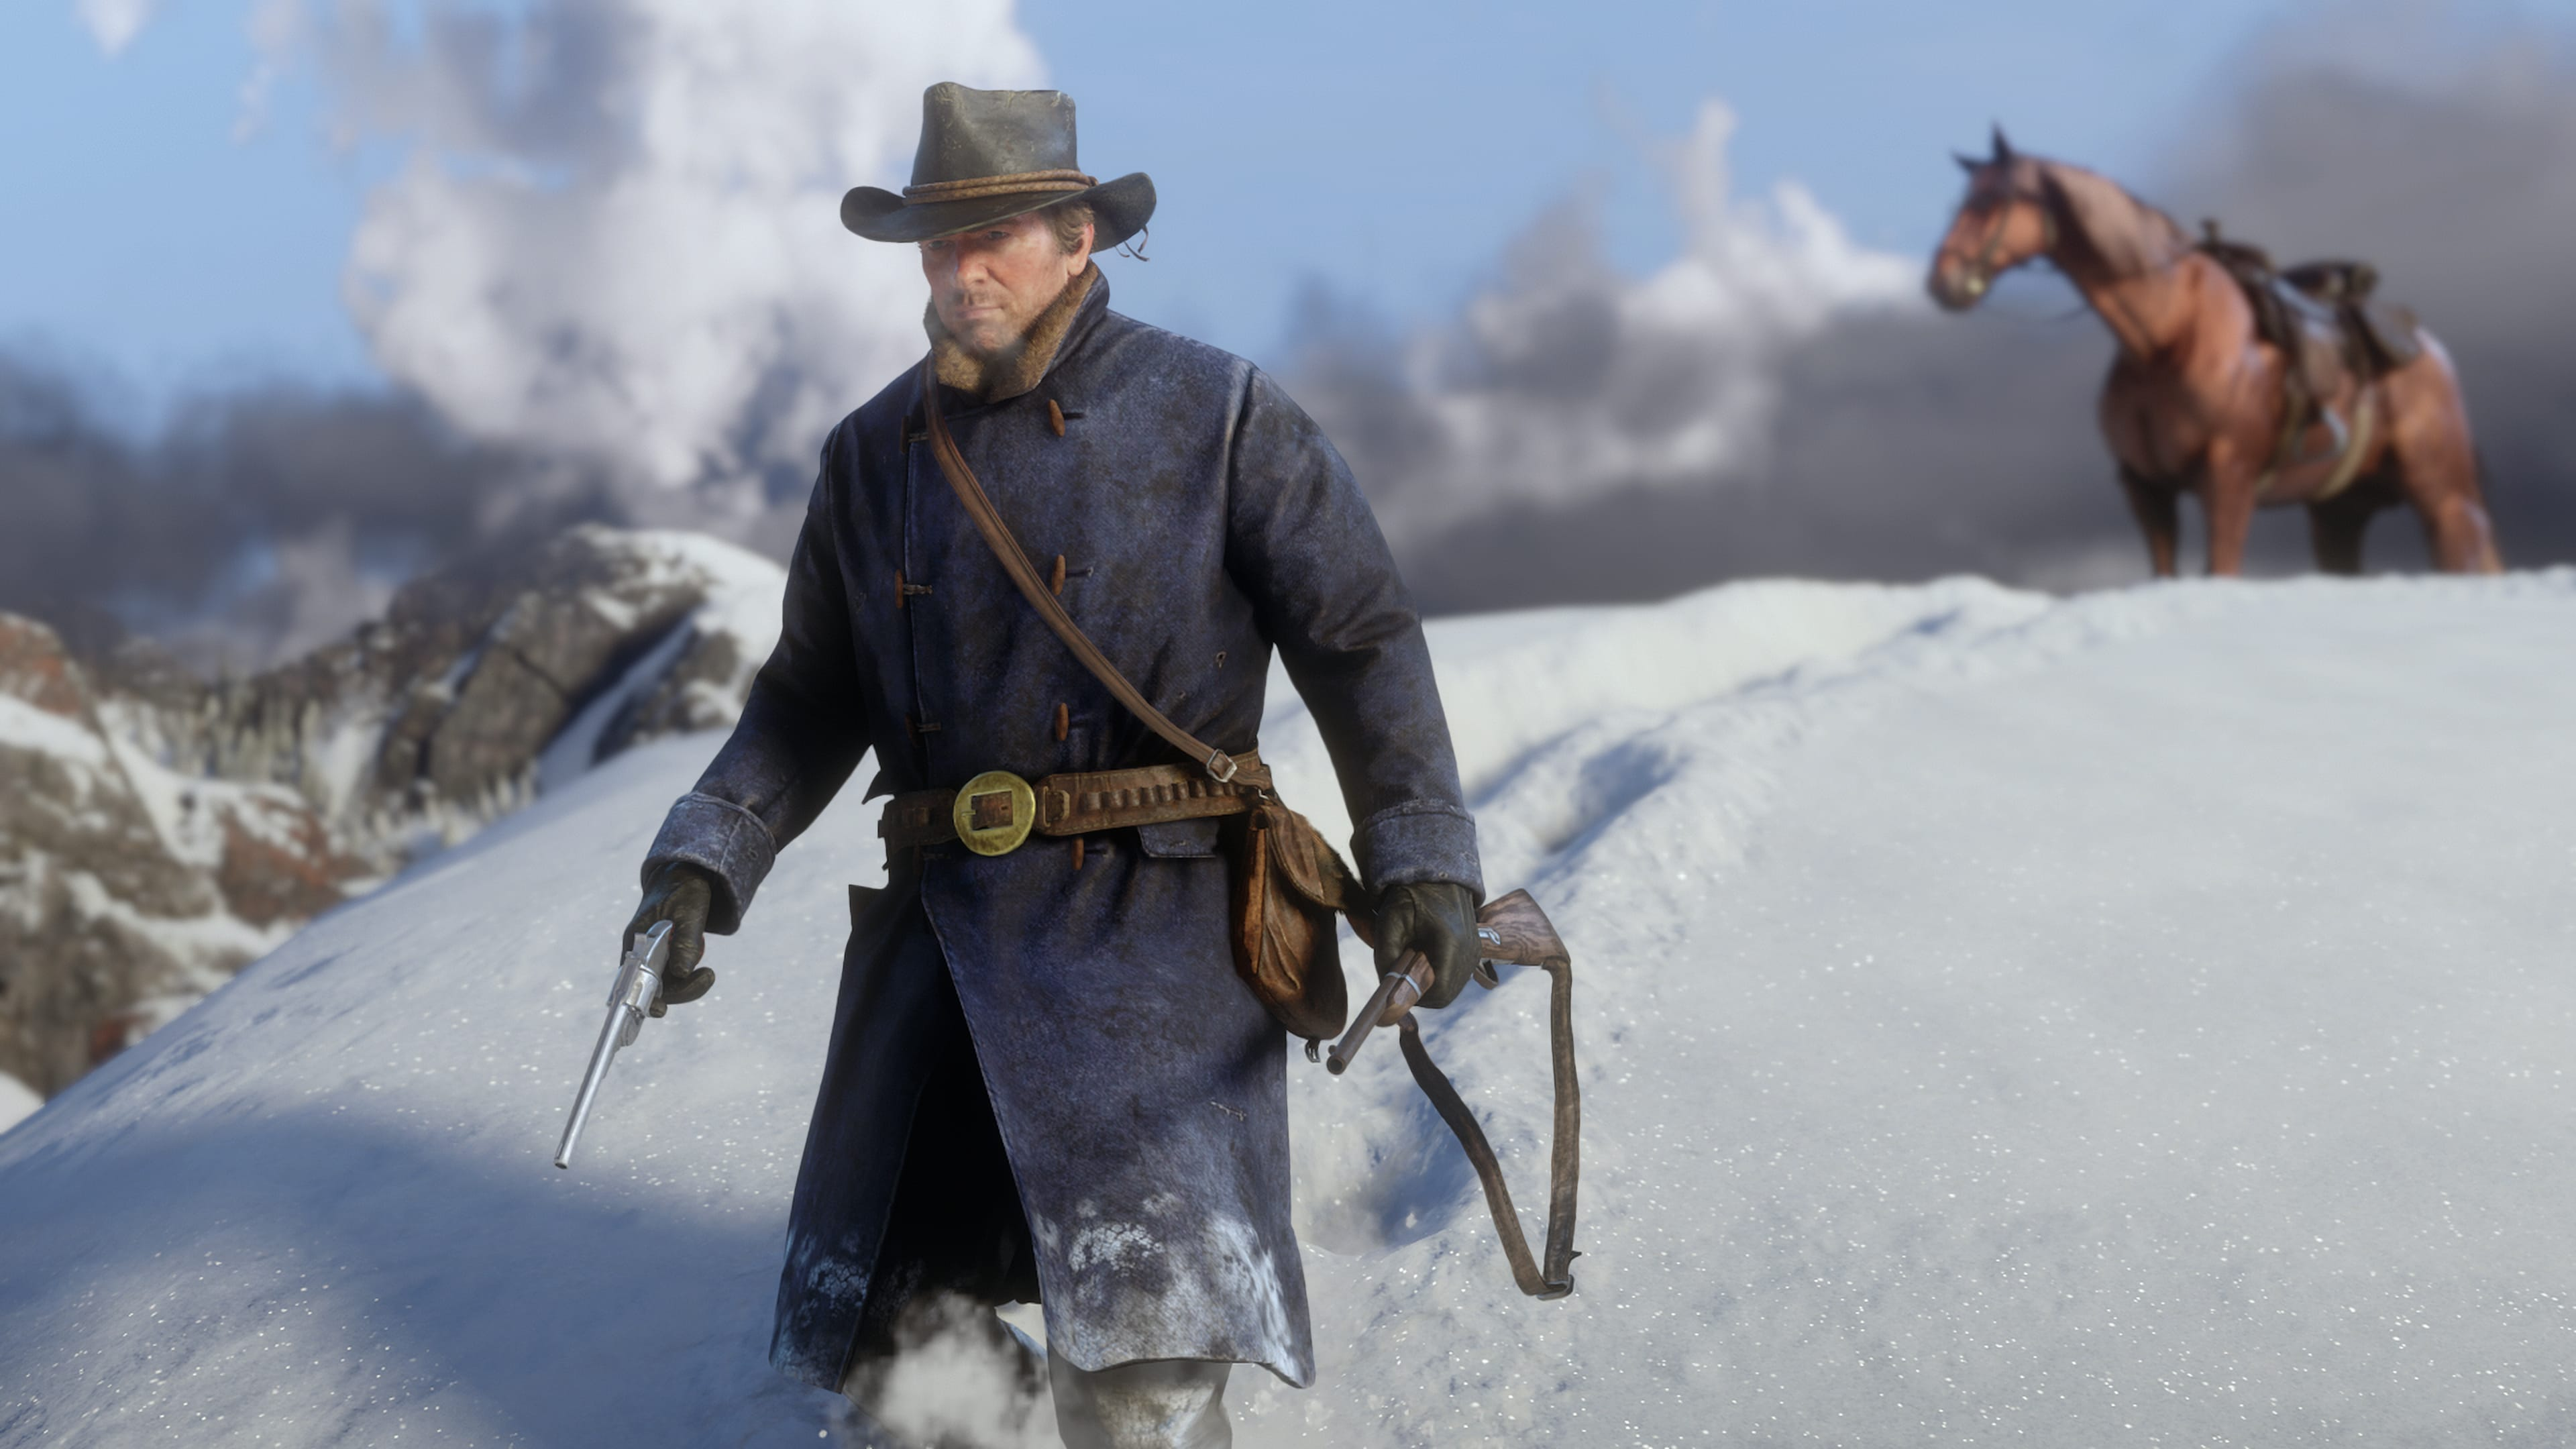 2409f1fcae48d26f69640d3fe28a3c49.jpg - Red Dead Redemption 2